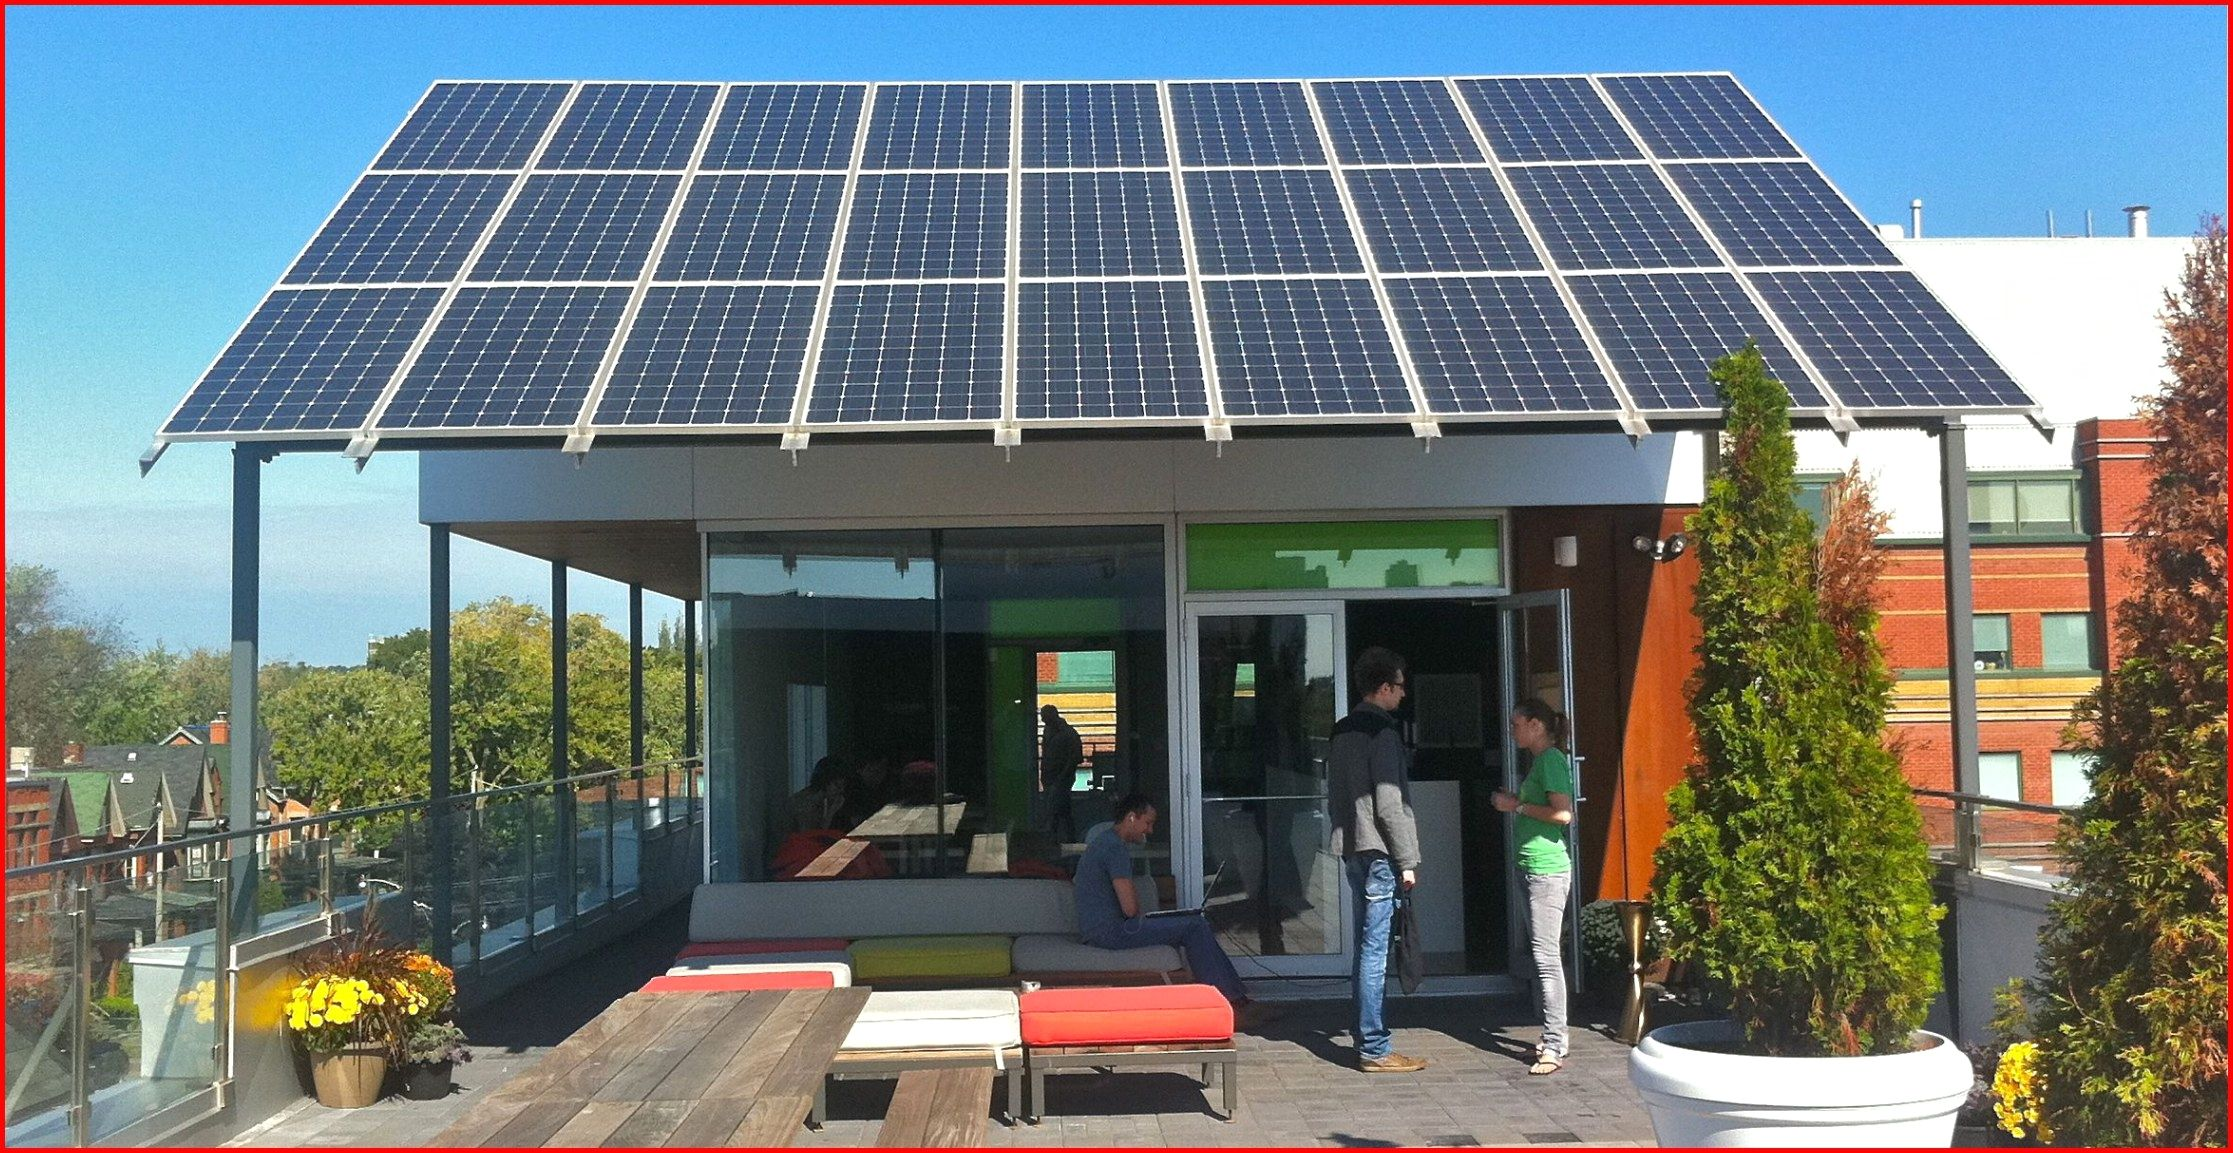 Green Energy For All Solar Energy 1kw Cost Making The Decision To Go Environment Friendly By Converting Solar Panels Best Solar Panels Solar Panels For Home